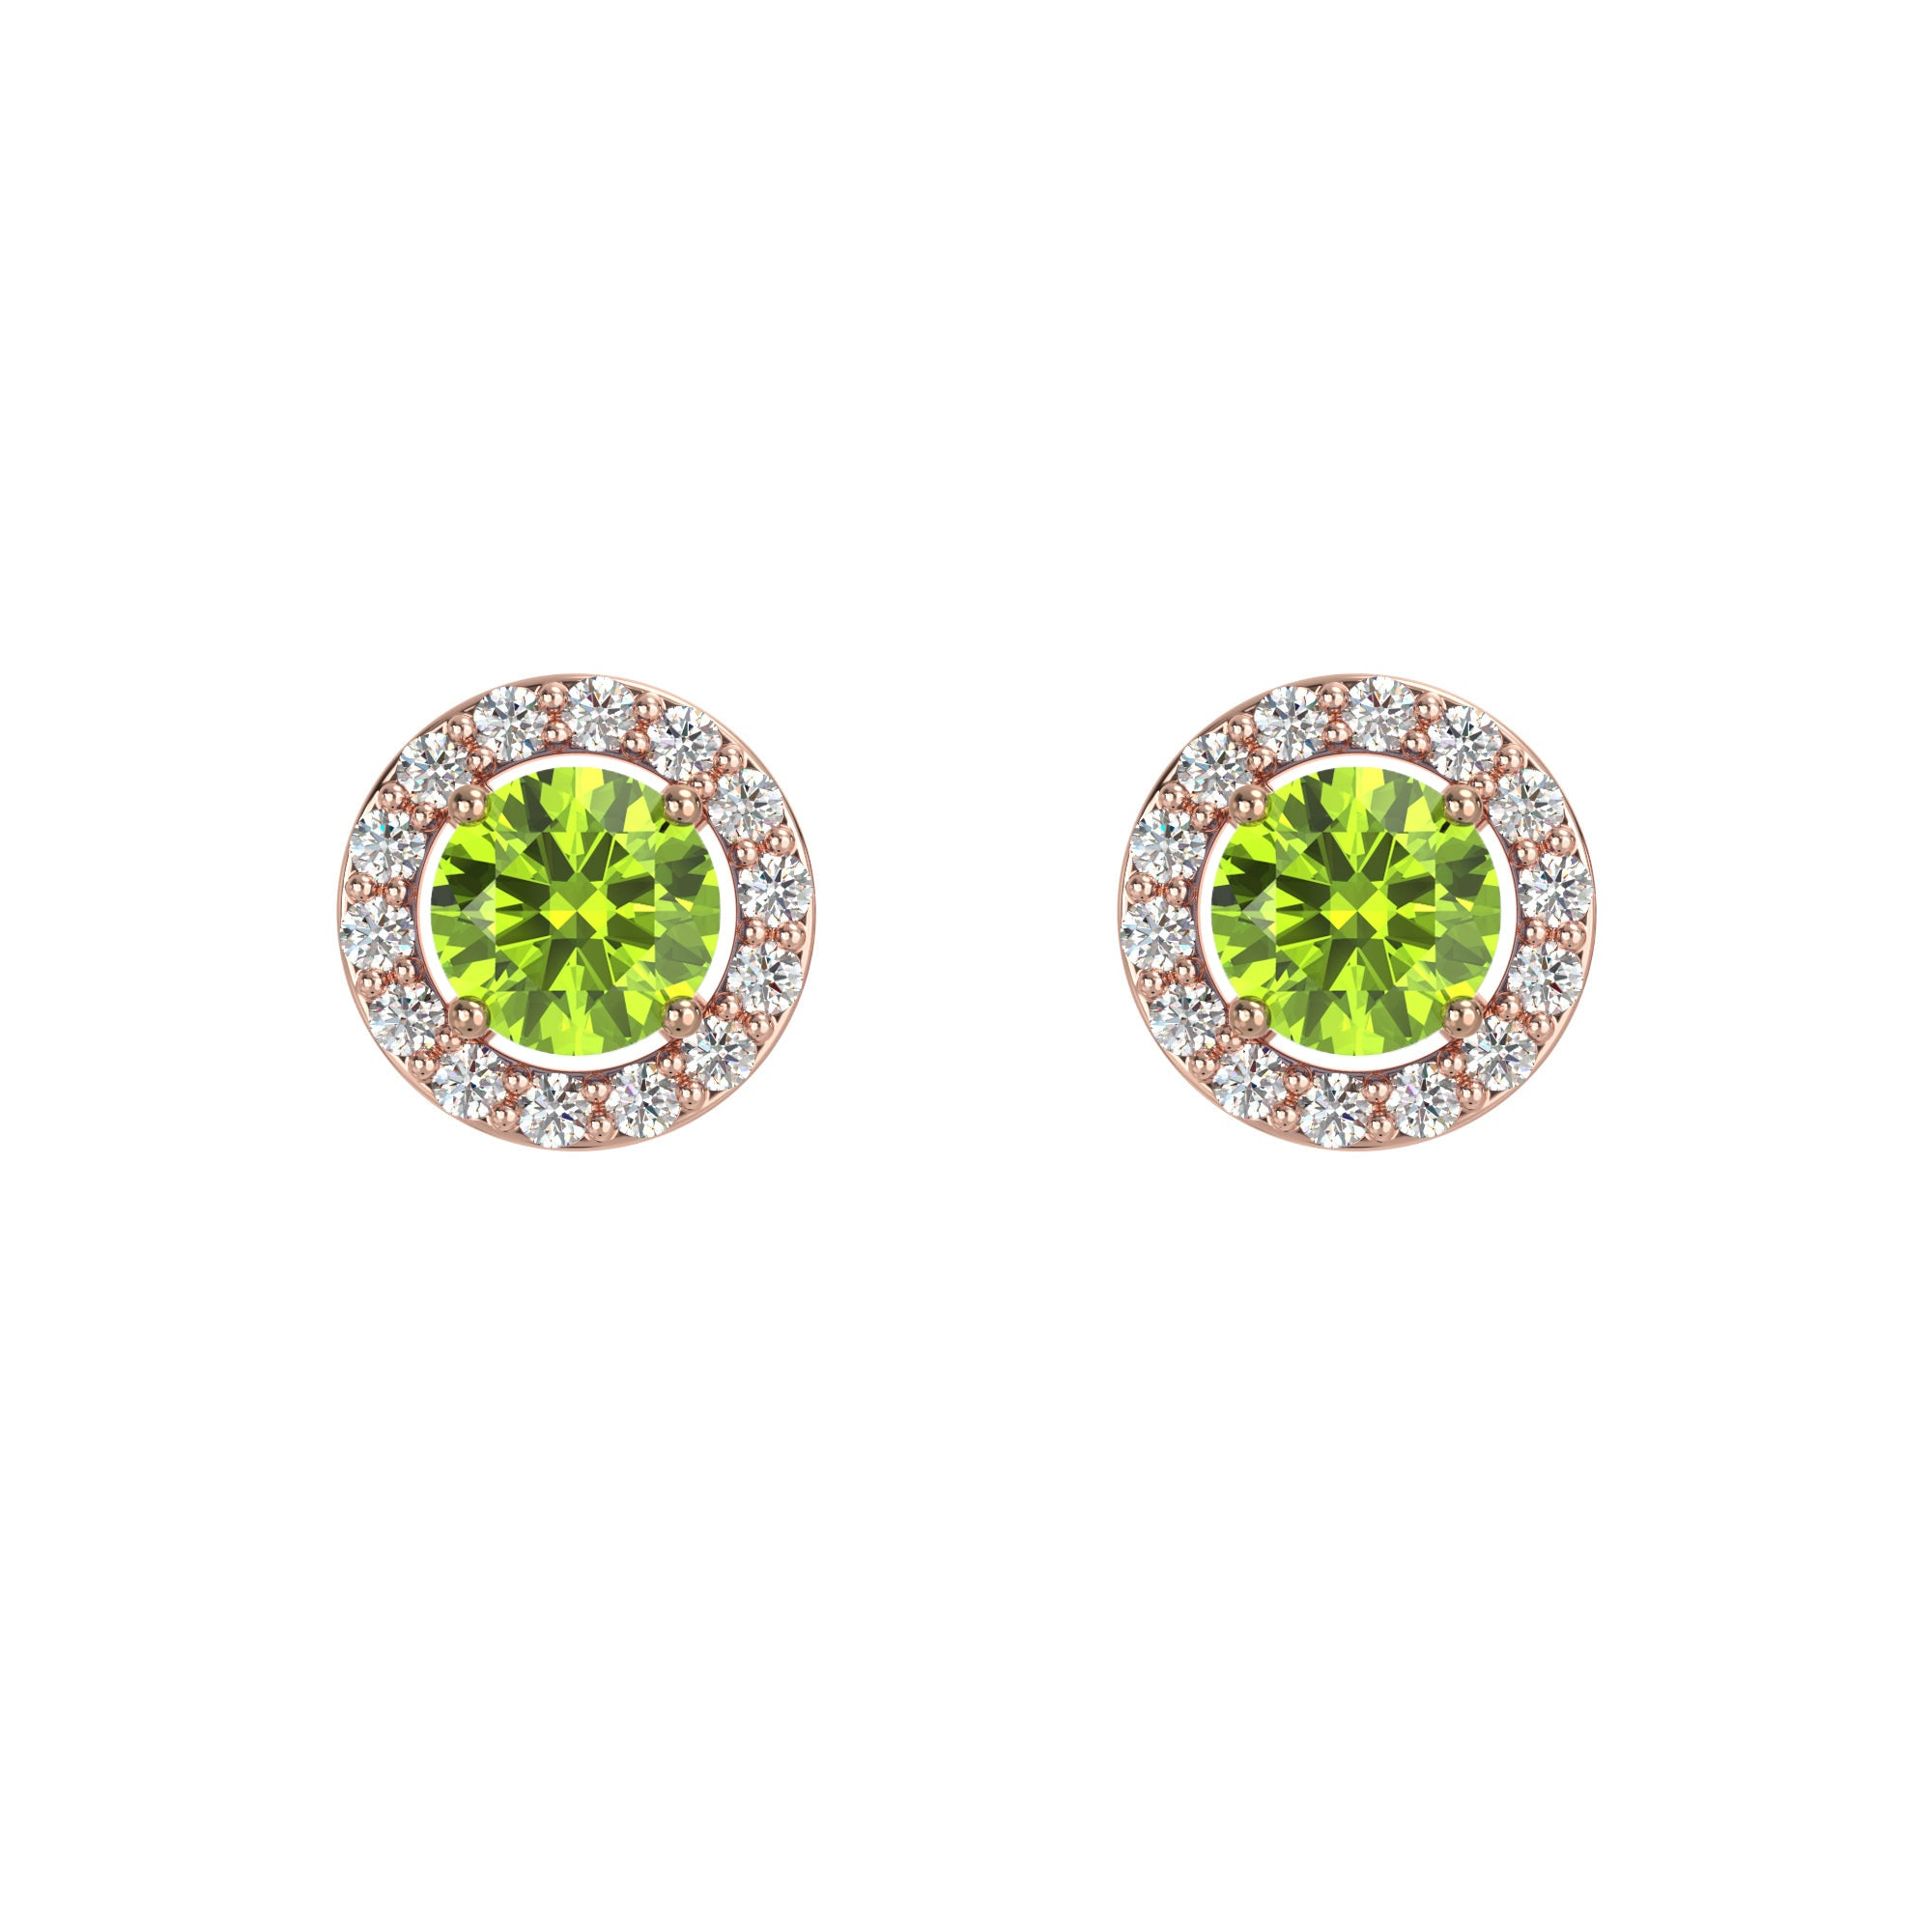 925 Silver Luxe Series Earring - Lydia (Peridot) - Rose Gold Plated